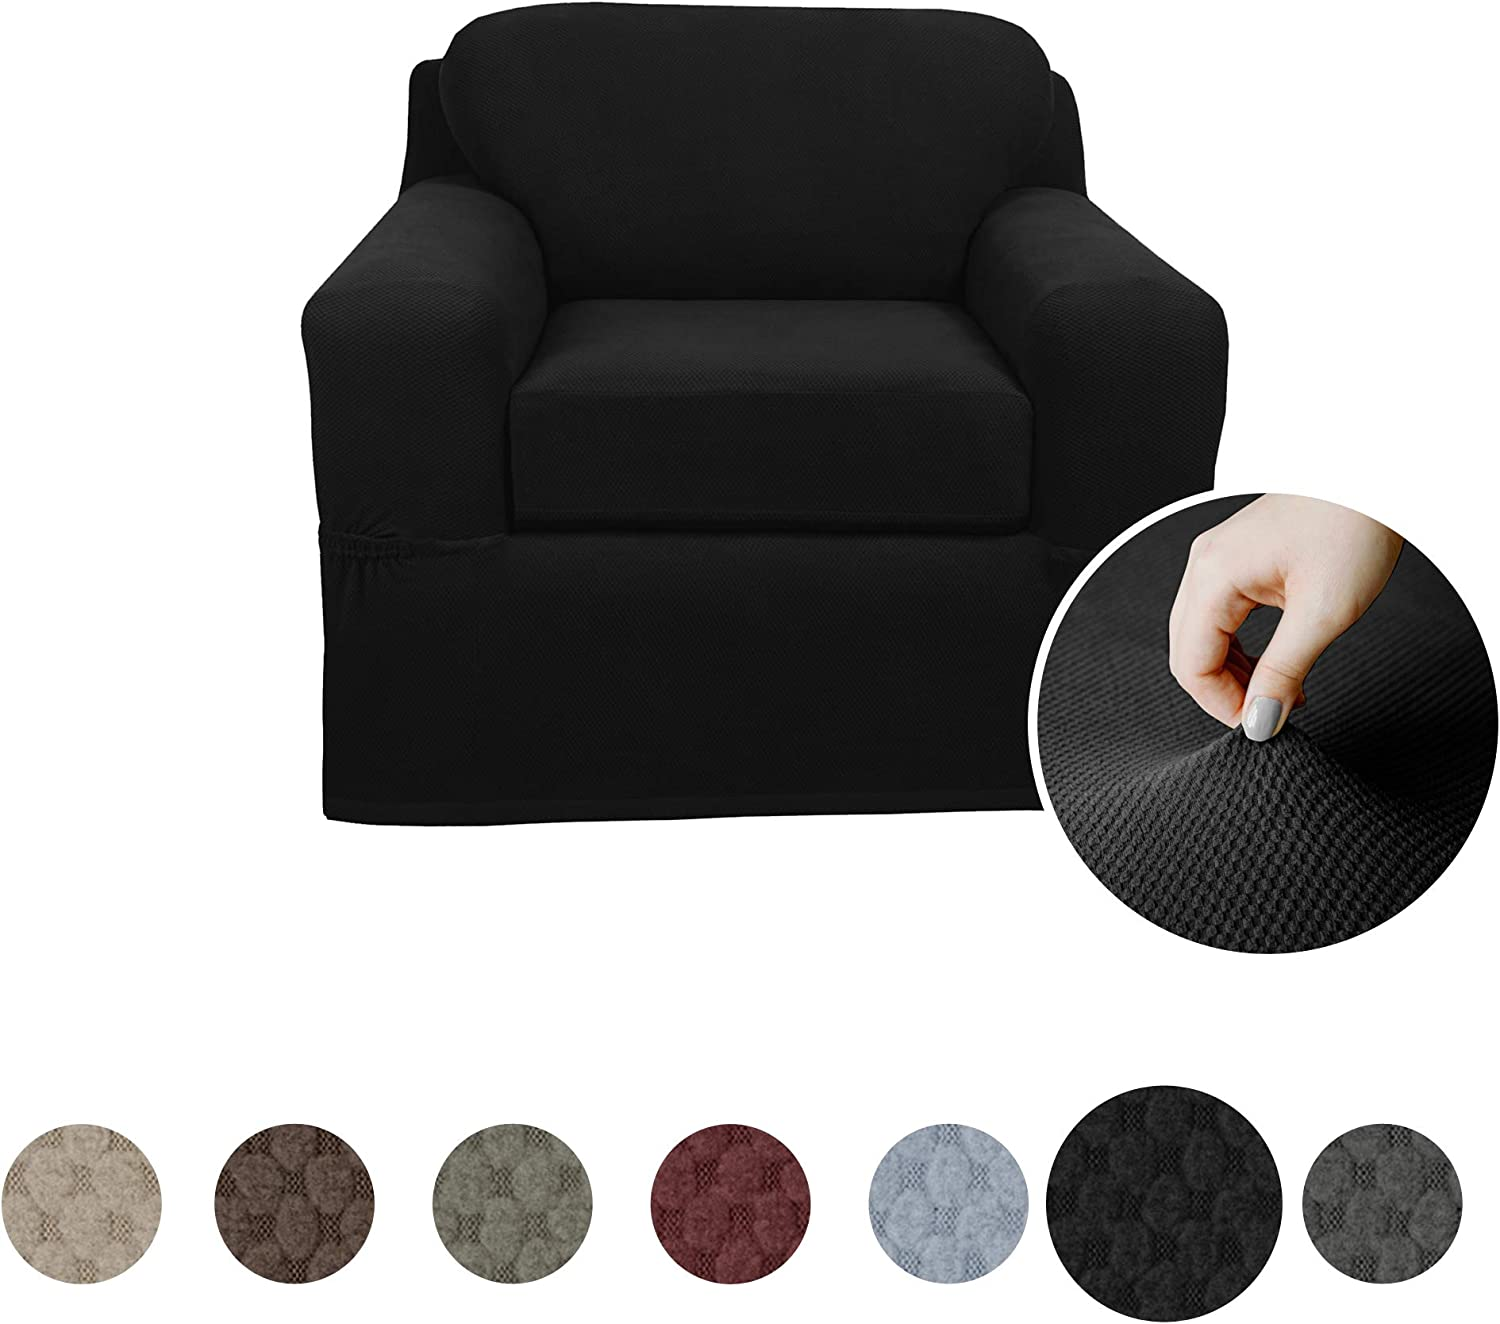 Charcoal Grey MAYTEX Pixel Ultra Soft Stretch 2 Piece Sofa Furniture Cover Slipcover